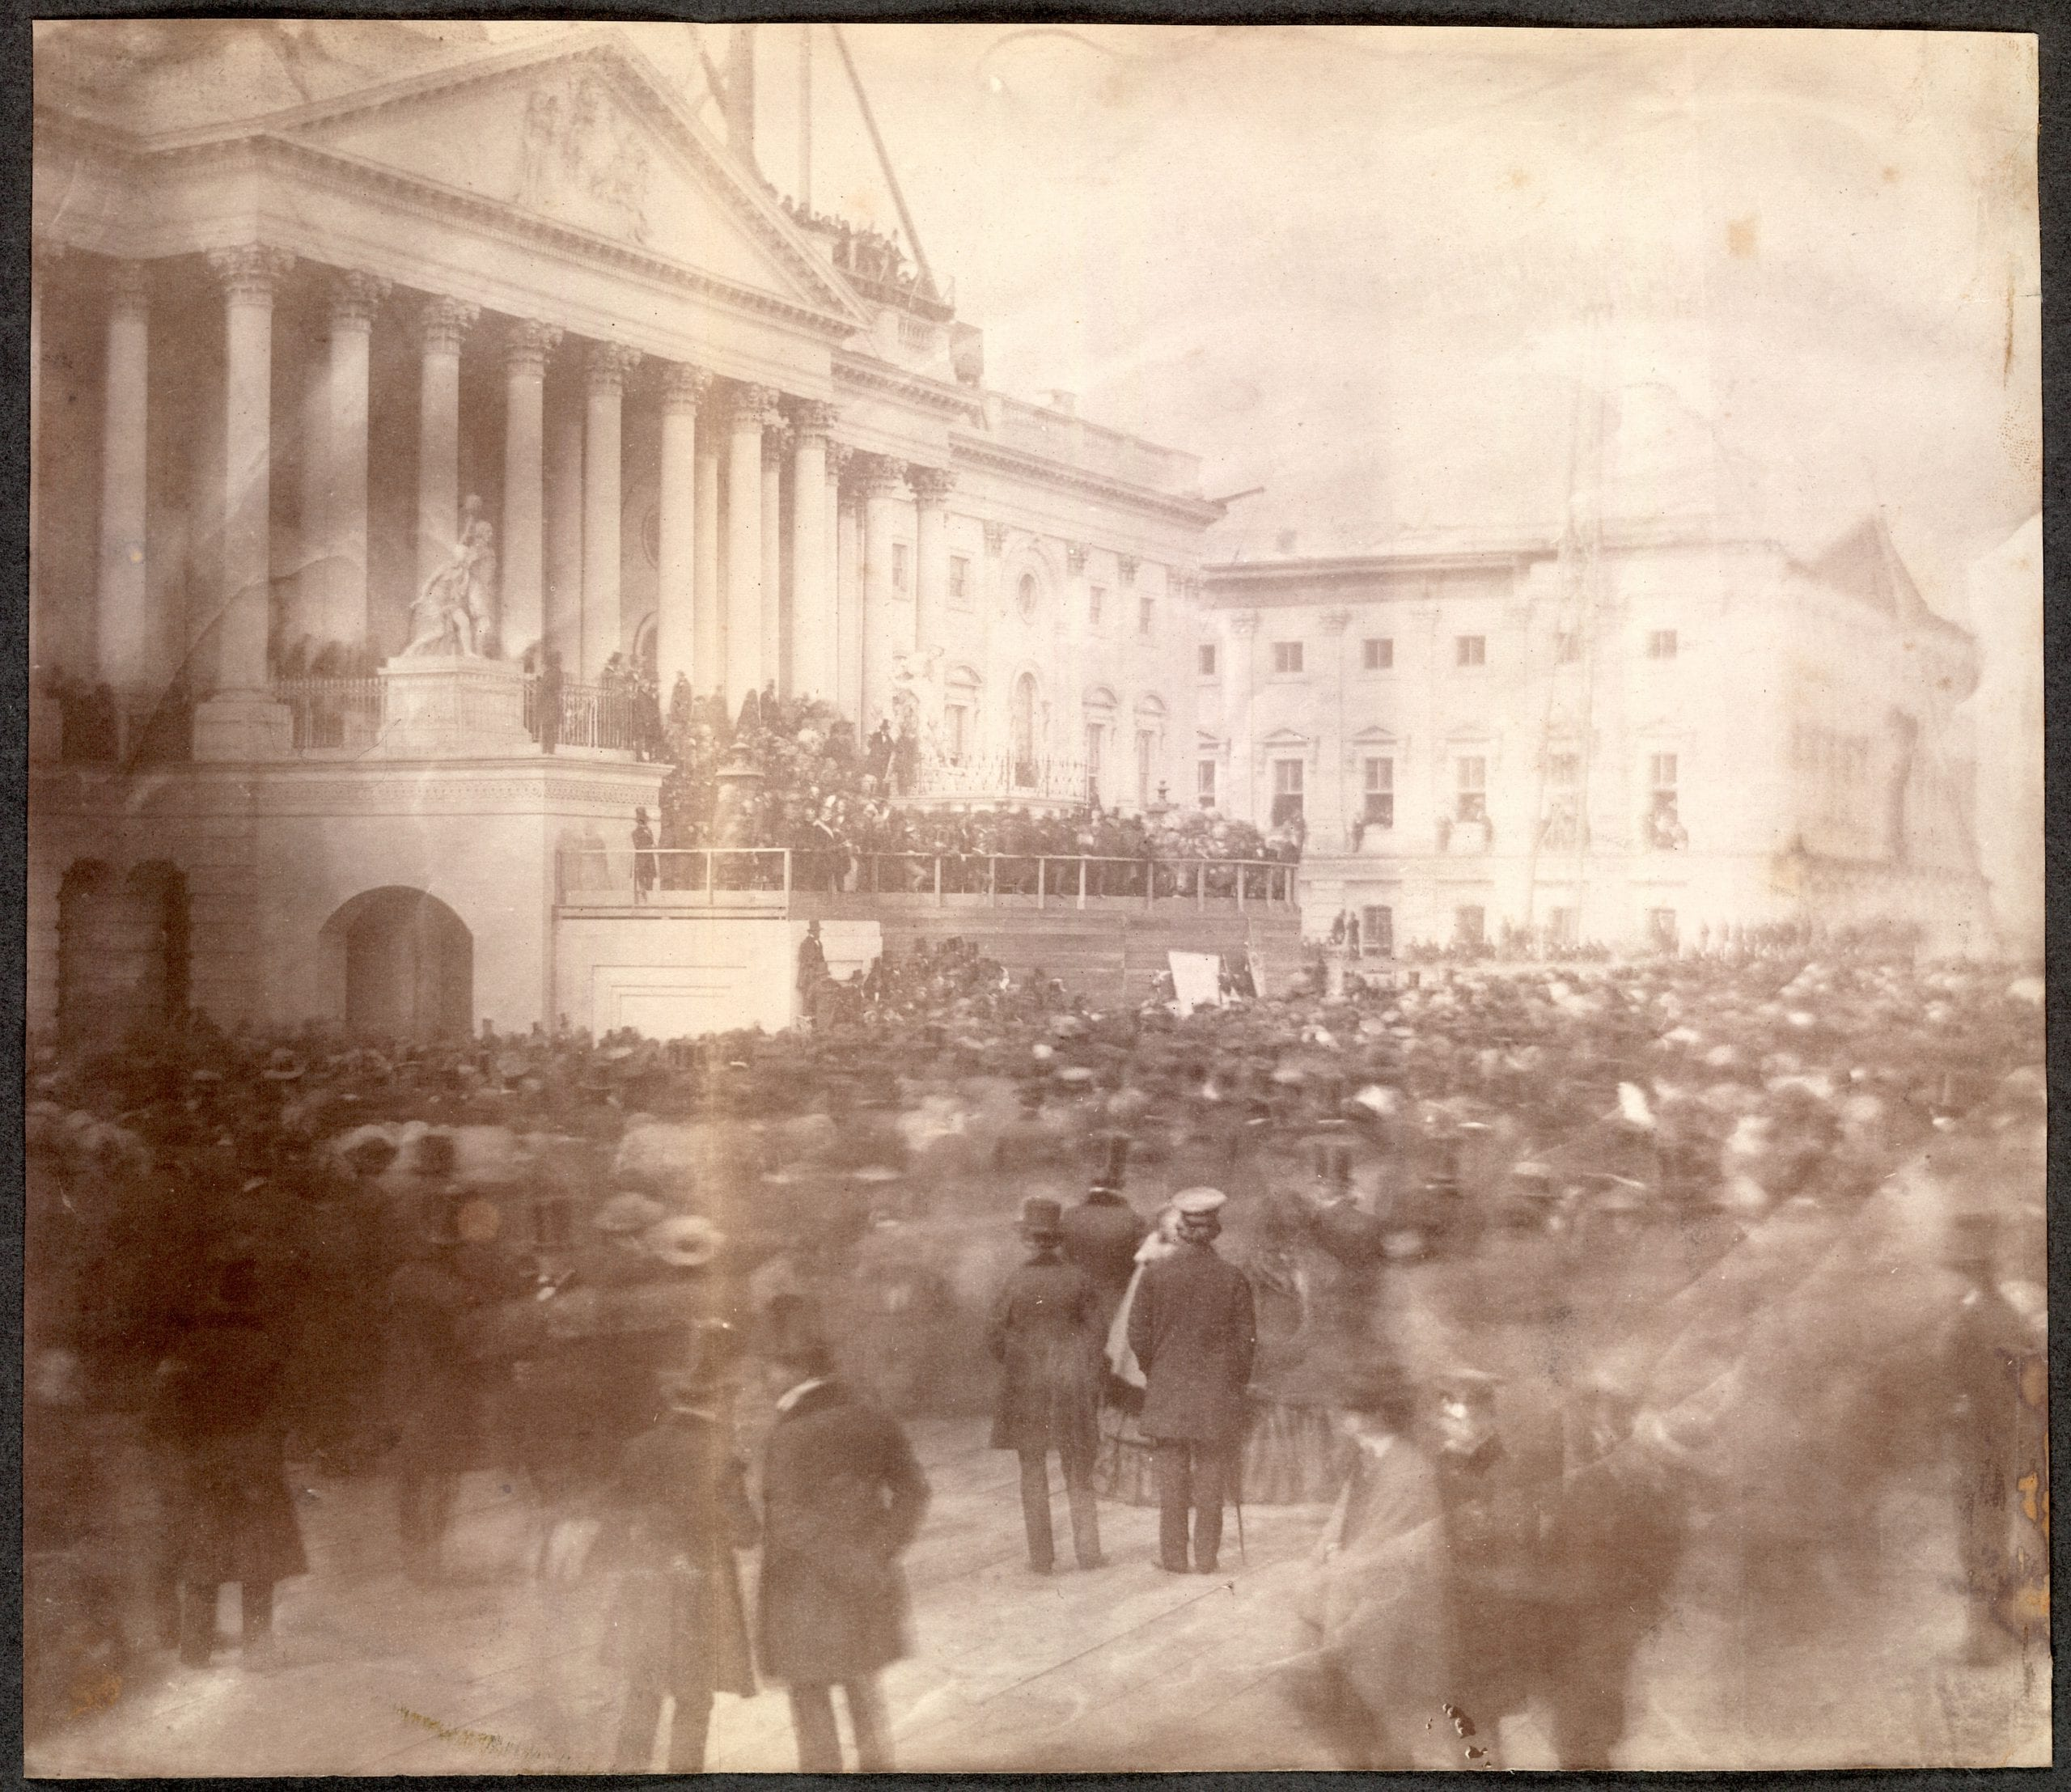 James Buchanan's Inauguration 1857